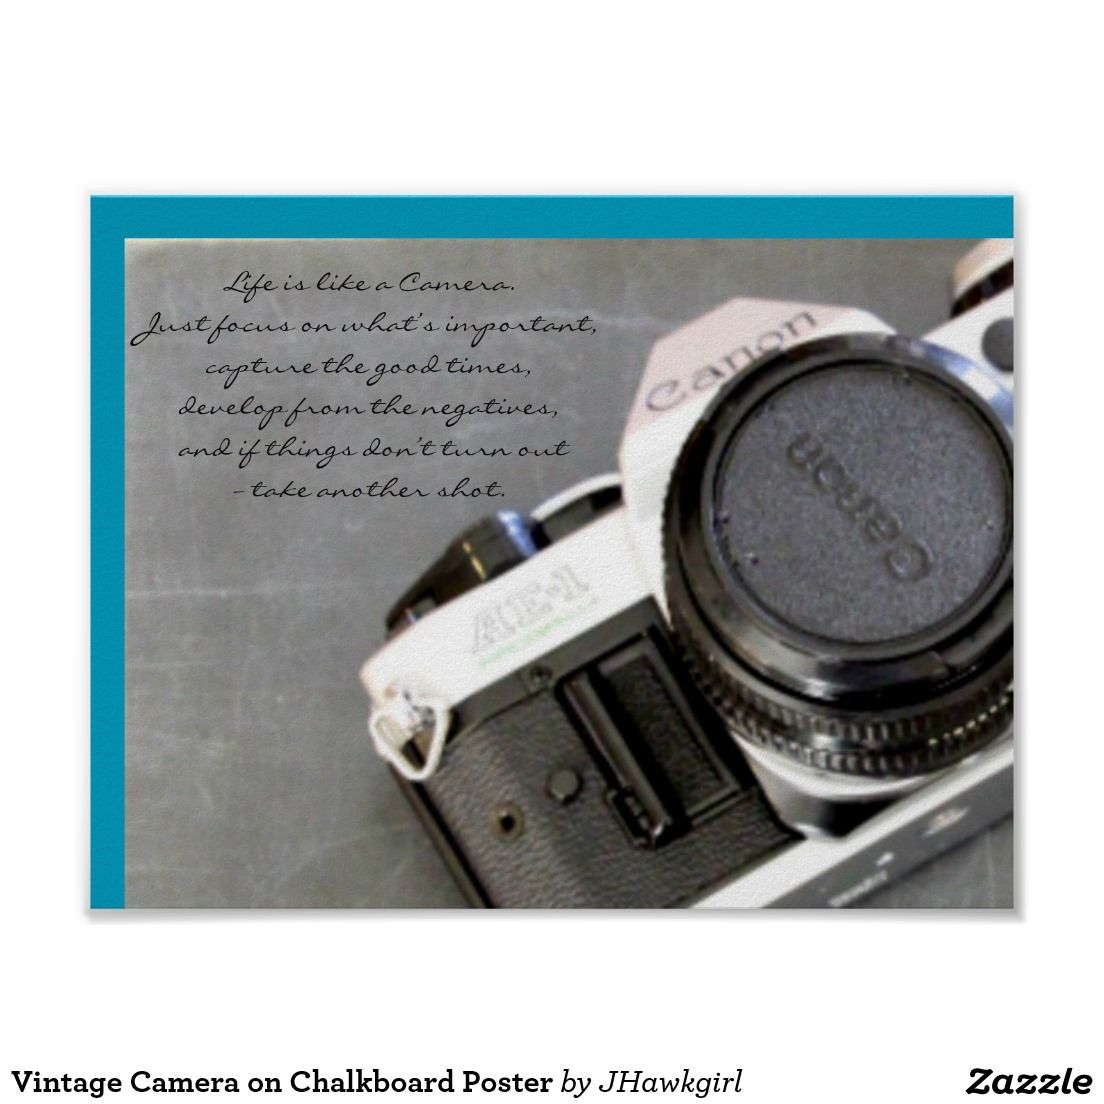 Vintage Camera on Chalkboard Poster by Amy Steeples. Available on Zazzle.